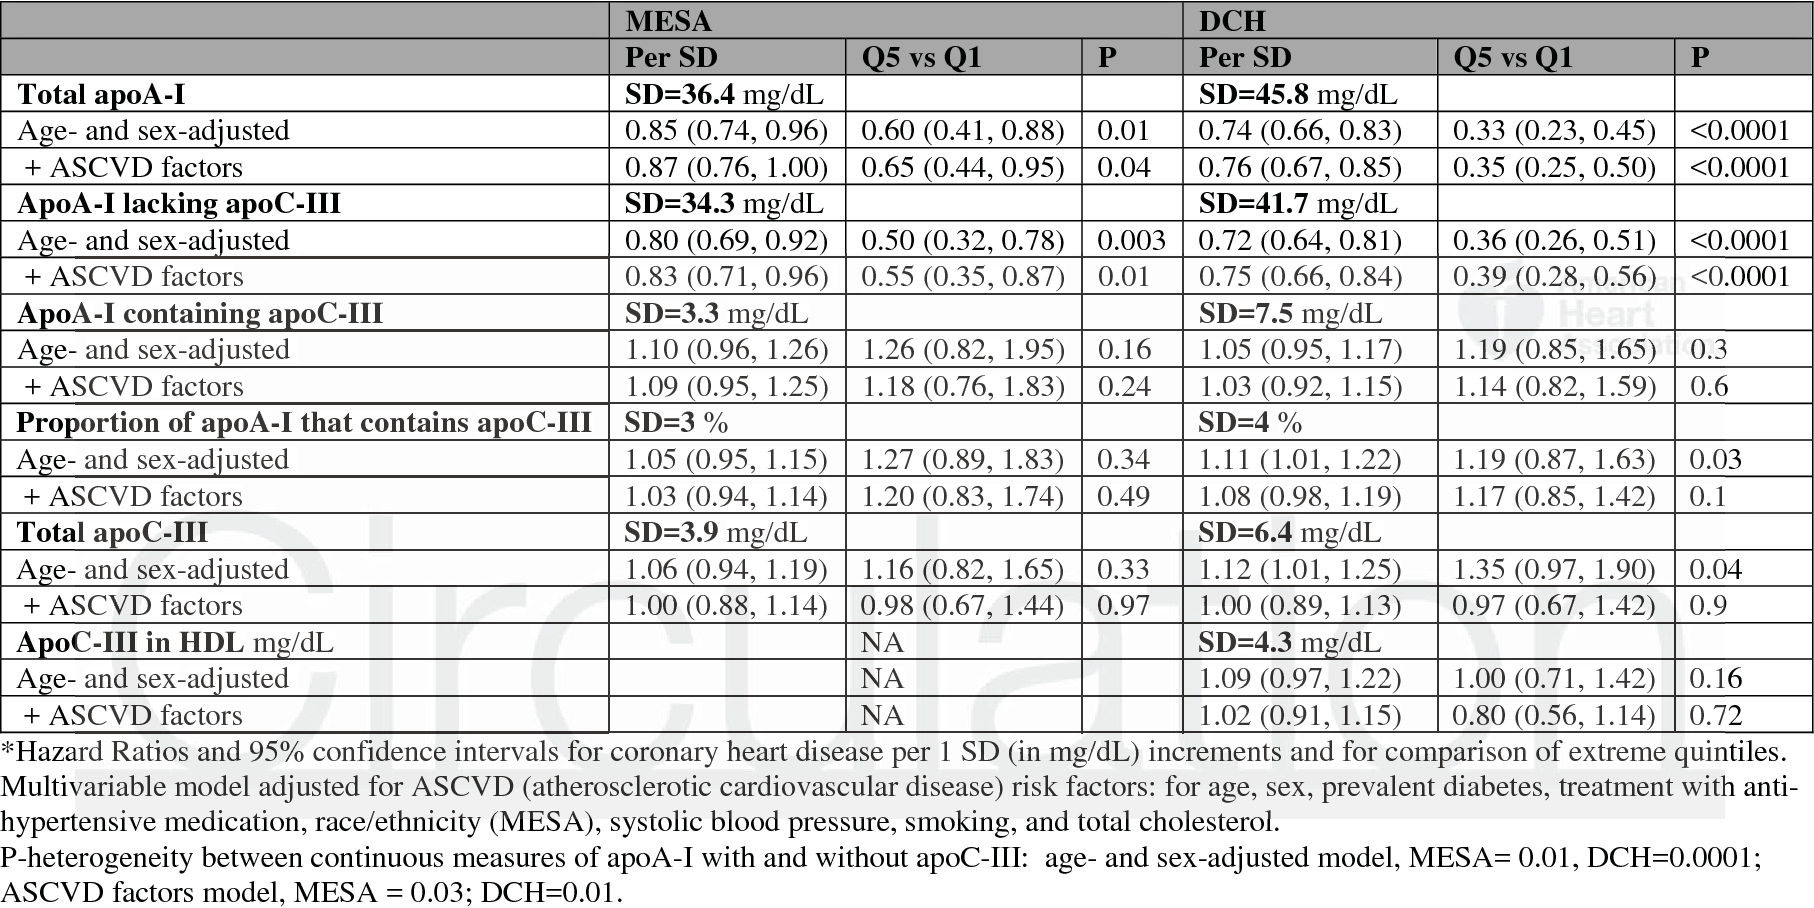 Table 2. Apolipoprotein A-I concentrations in total plasma and in subspecies of HDL containing and lacking apoC-III and risk of coronary heart disease. The Multi-Ethnic Study of Atherosclerosis and the Diet, Cancer and Health Study*